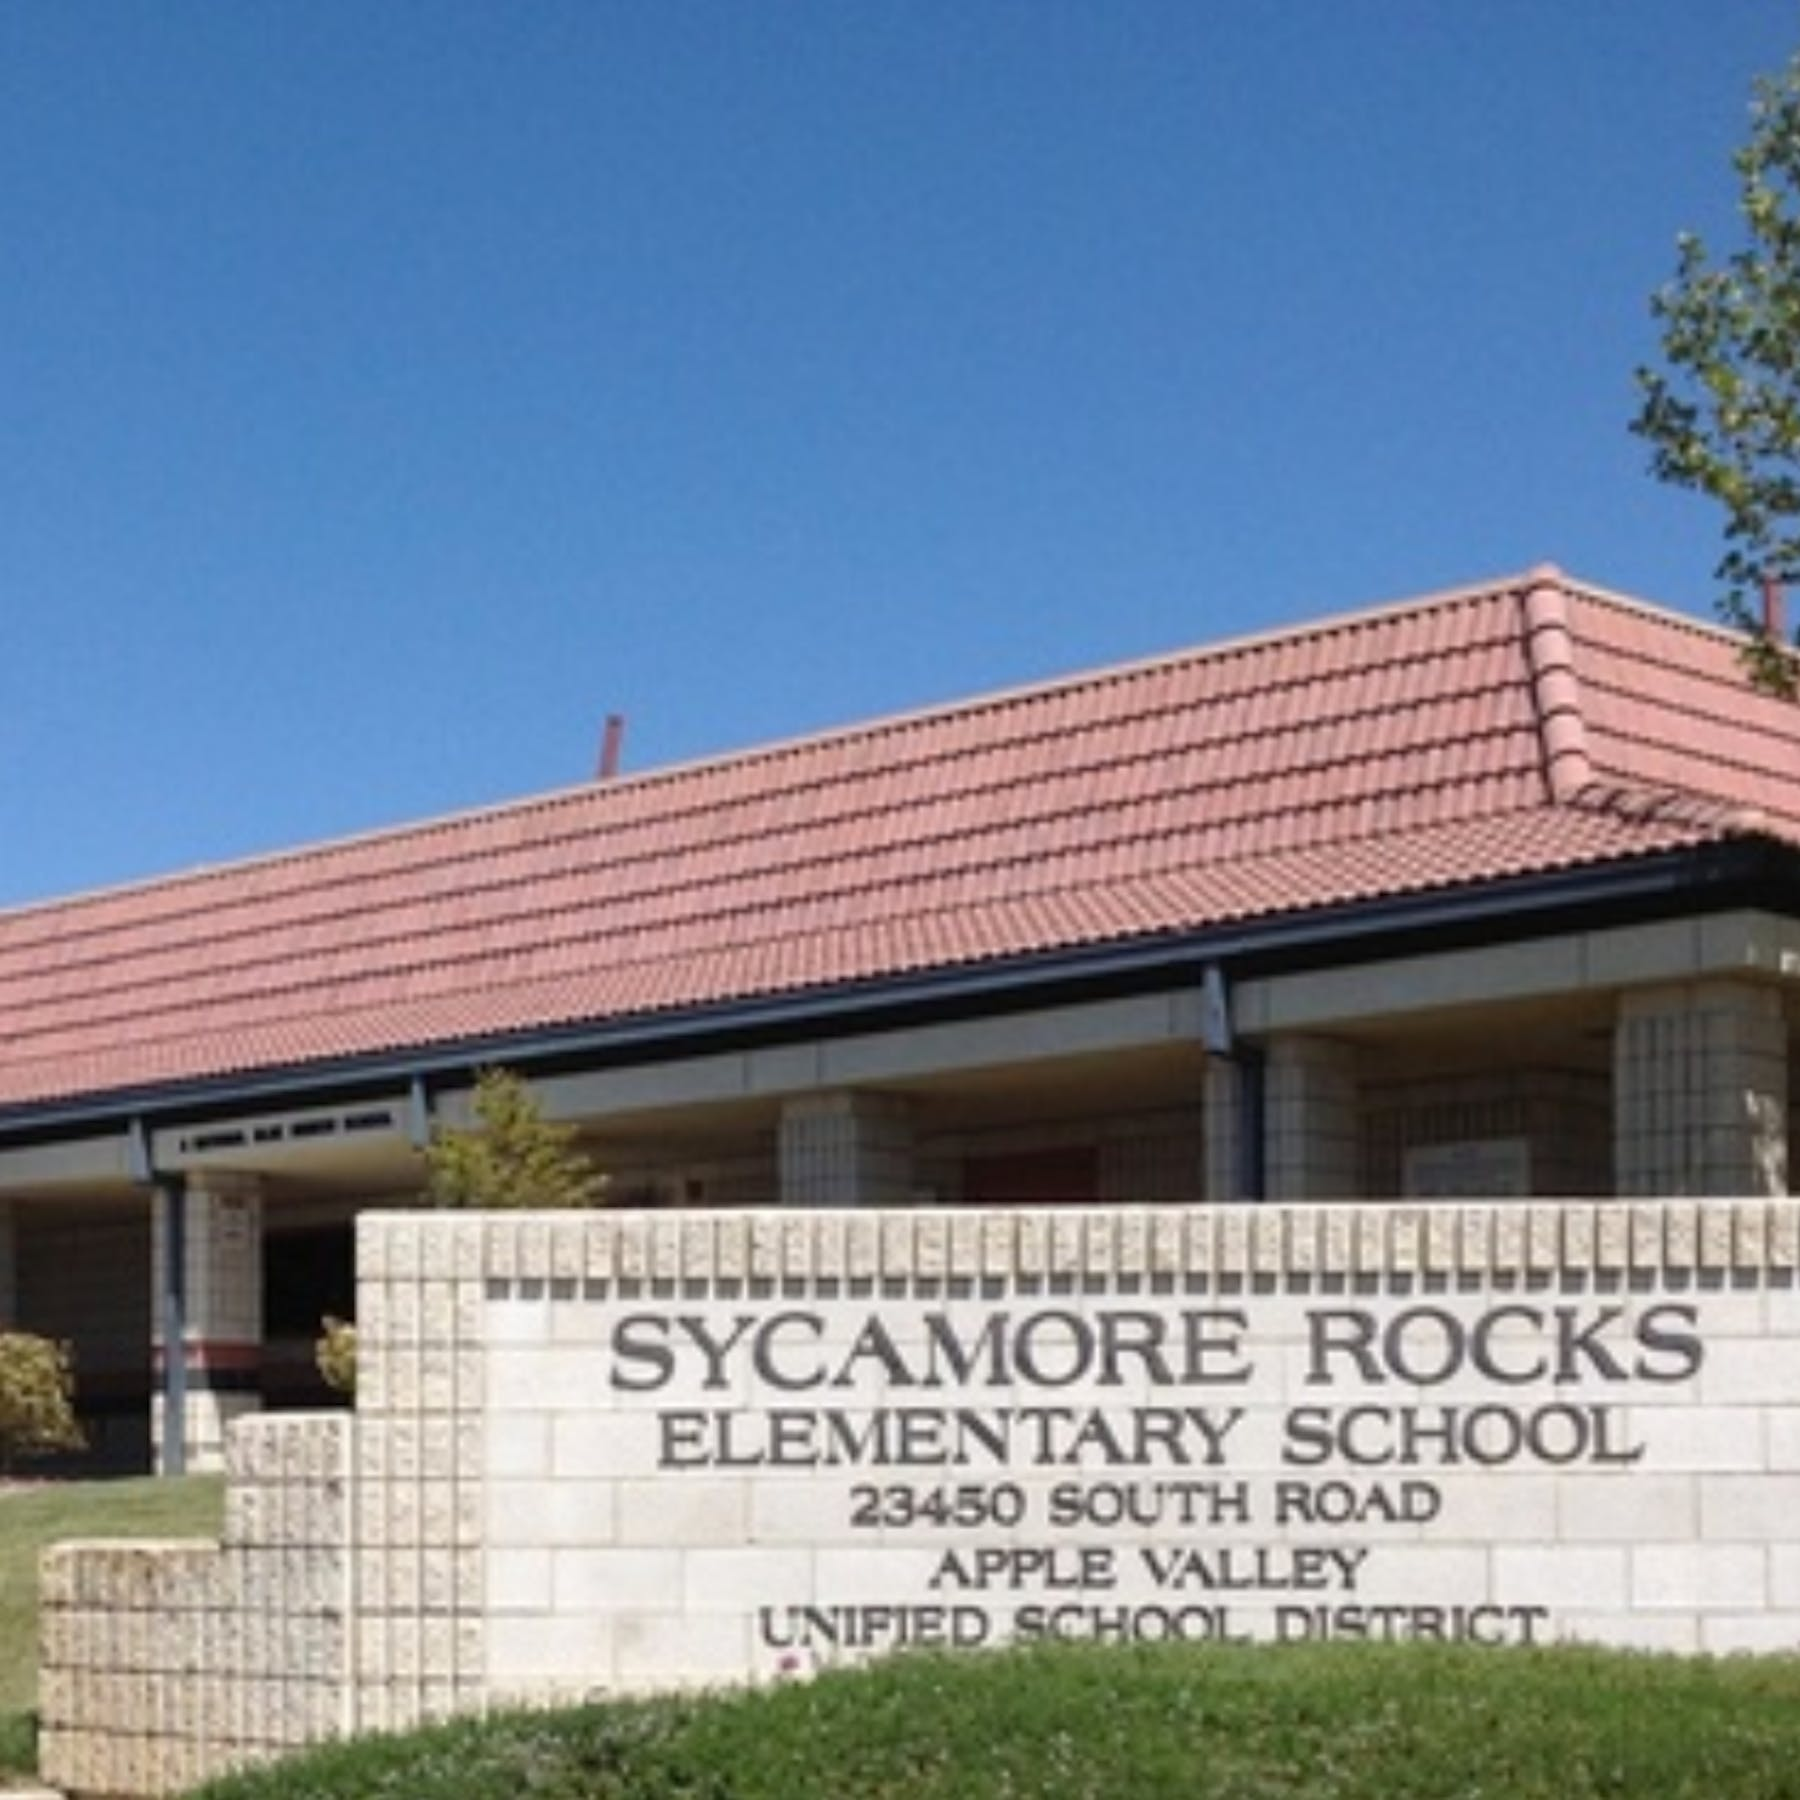 Apple Valley United School District Preschool (Sycamore Rocks